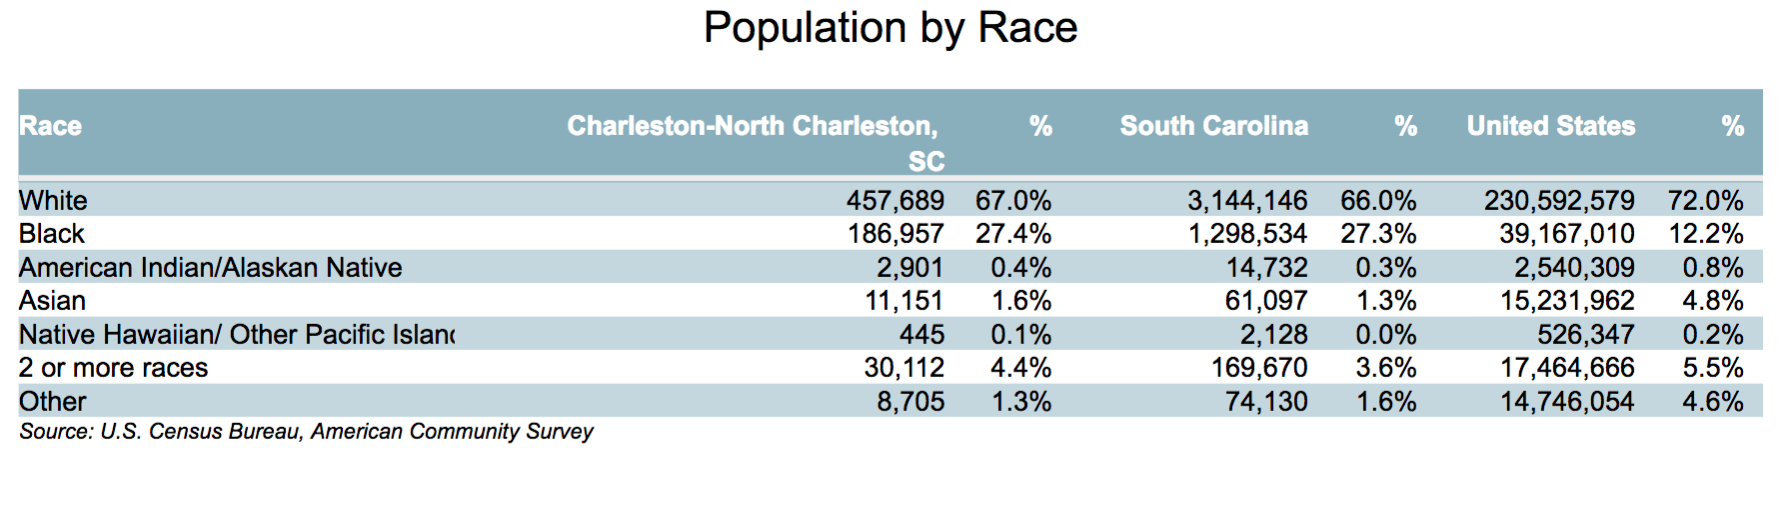 CharlestonNorth Charleston Community Profile  New key